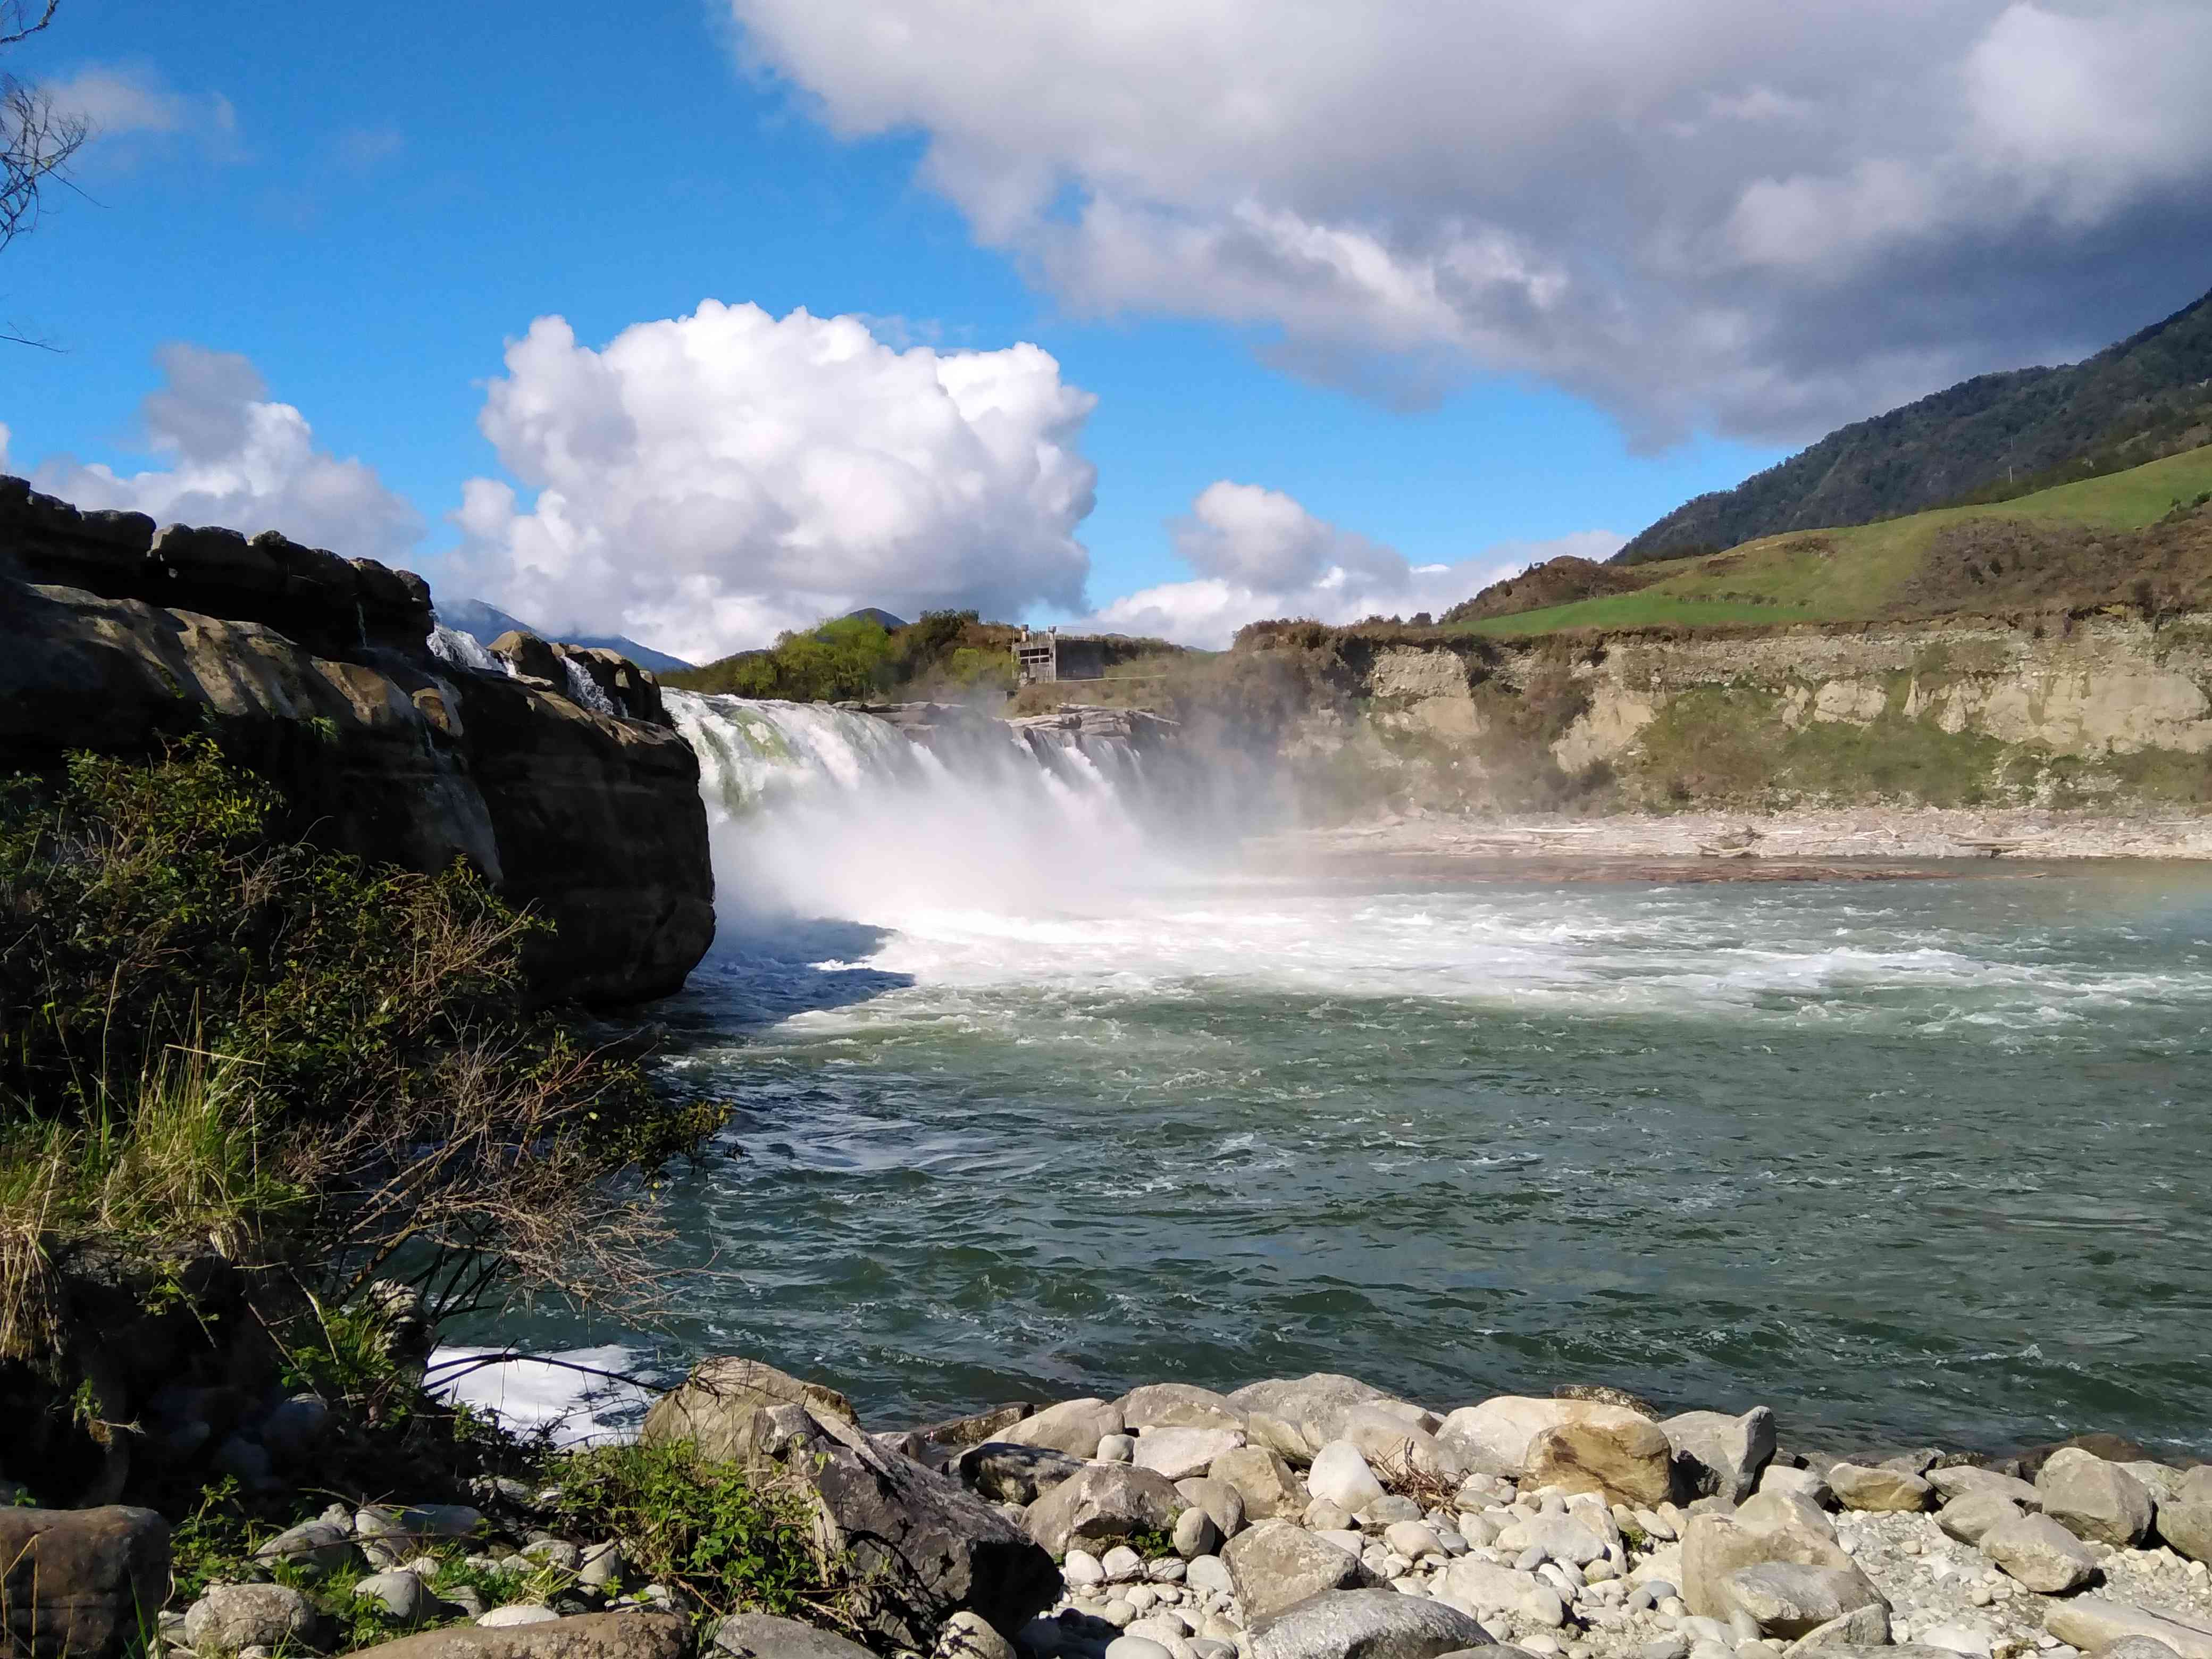 Maruia Falls with clouds, rocks, and cliffs